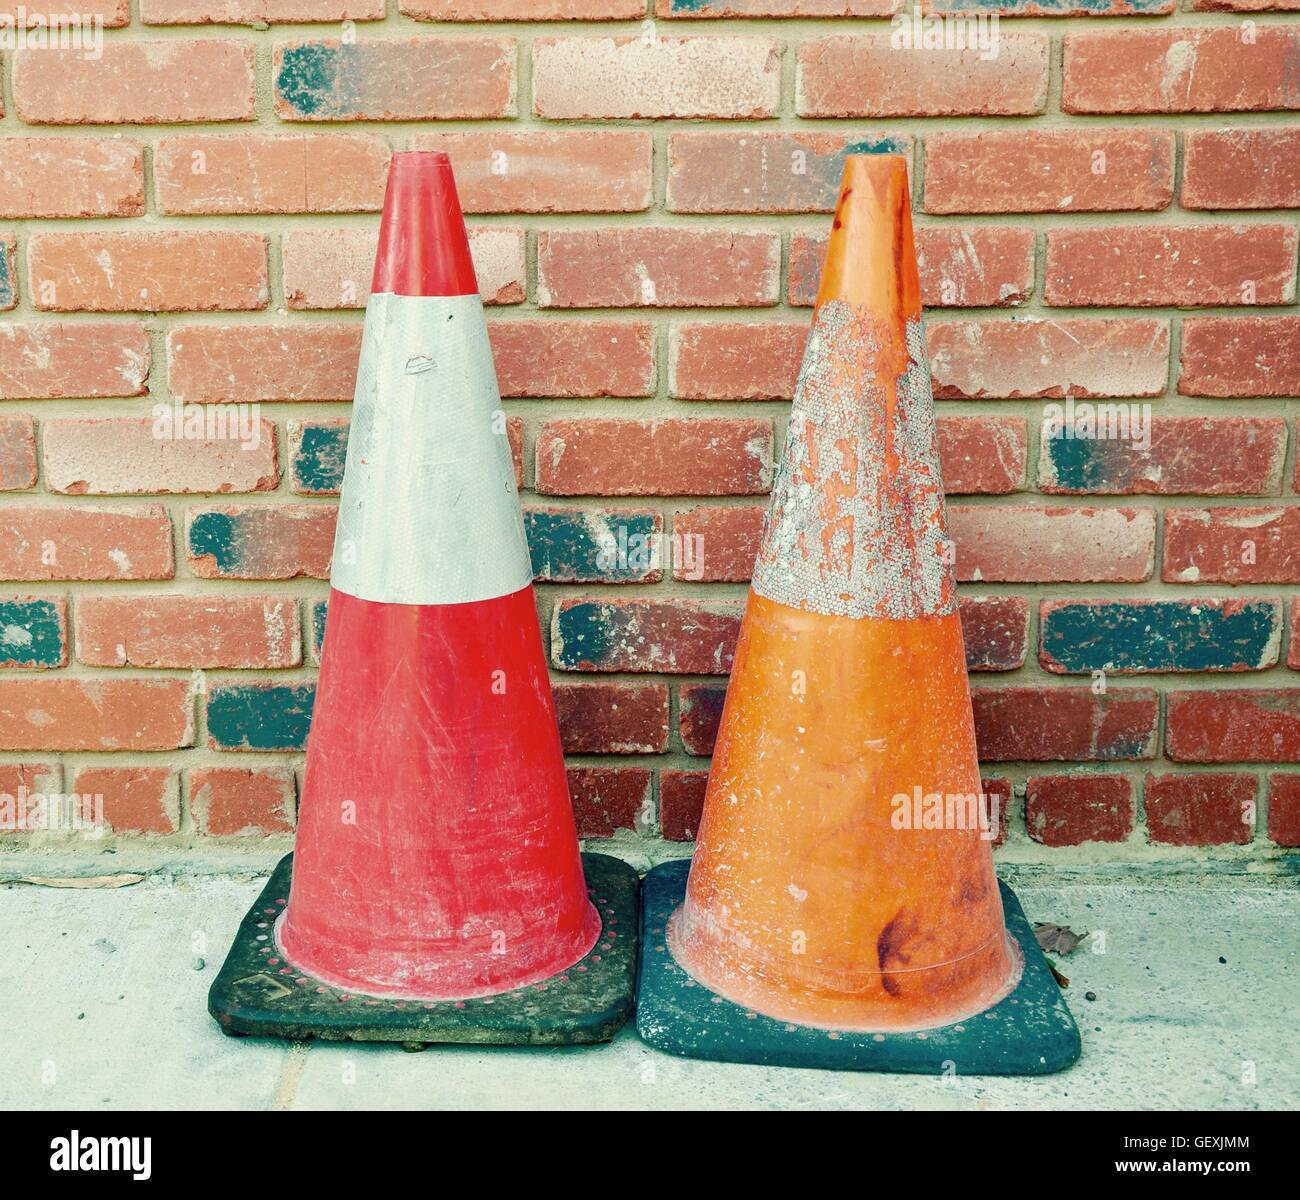 Two construction safety cones, red and orange with reflectors, isolated on a concrete sidewalk with brick background. - Stock Image